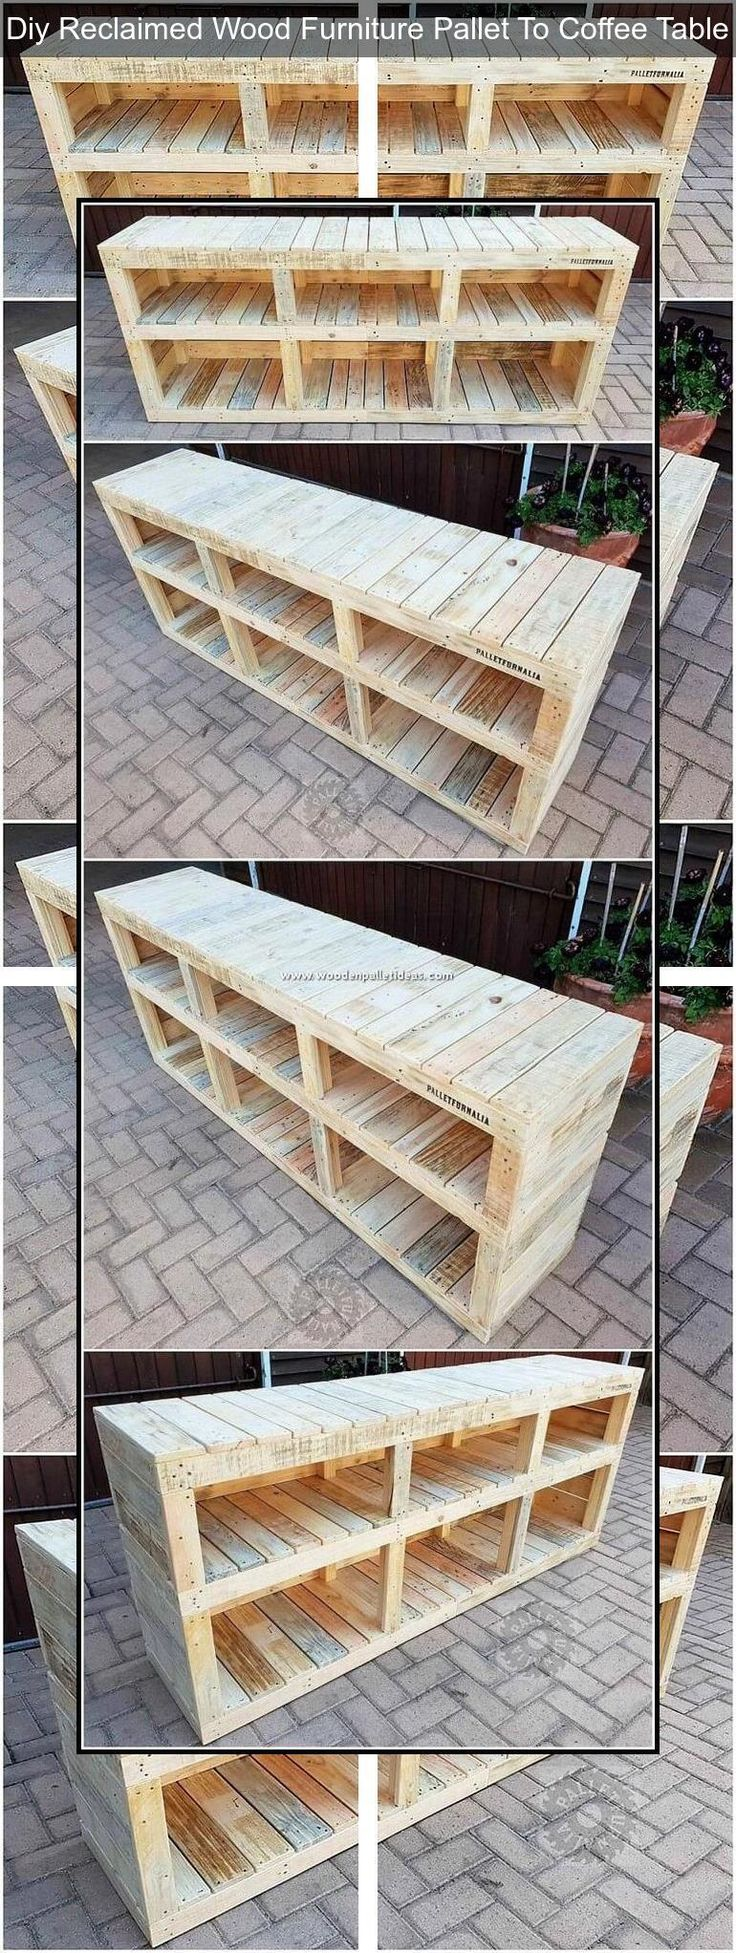 Pallet Furniture Couch | Where Can You Get Wooden Pallets ...